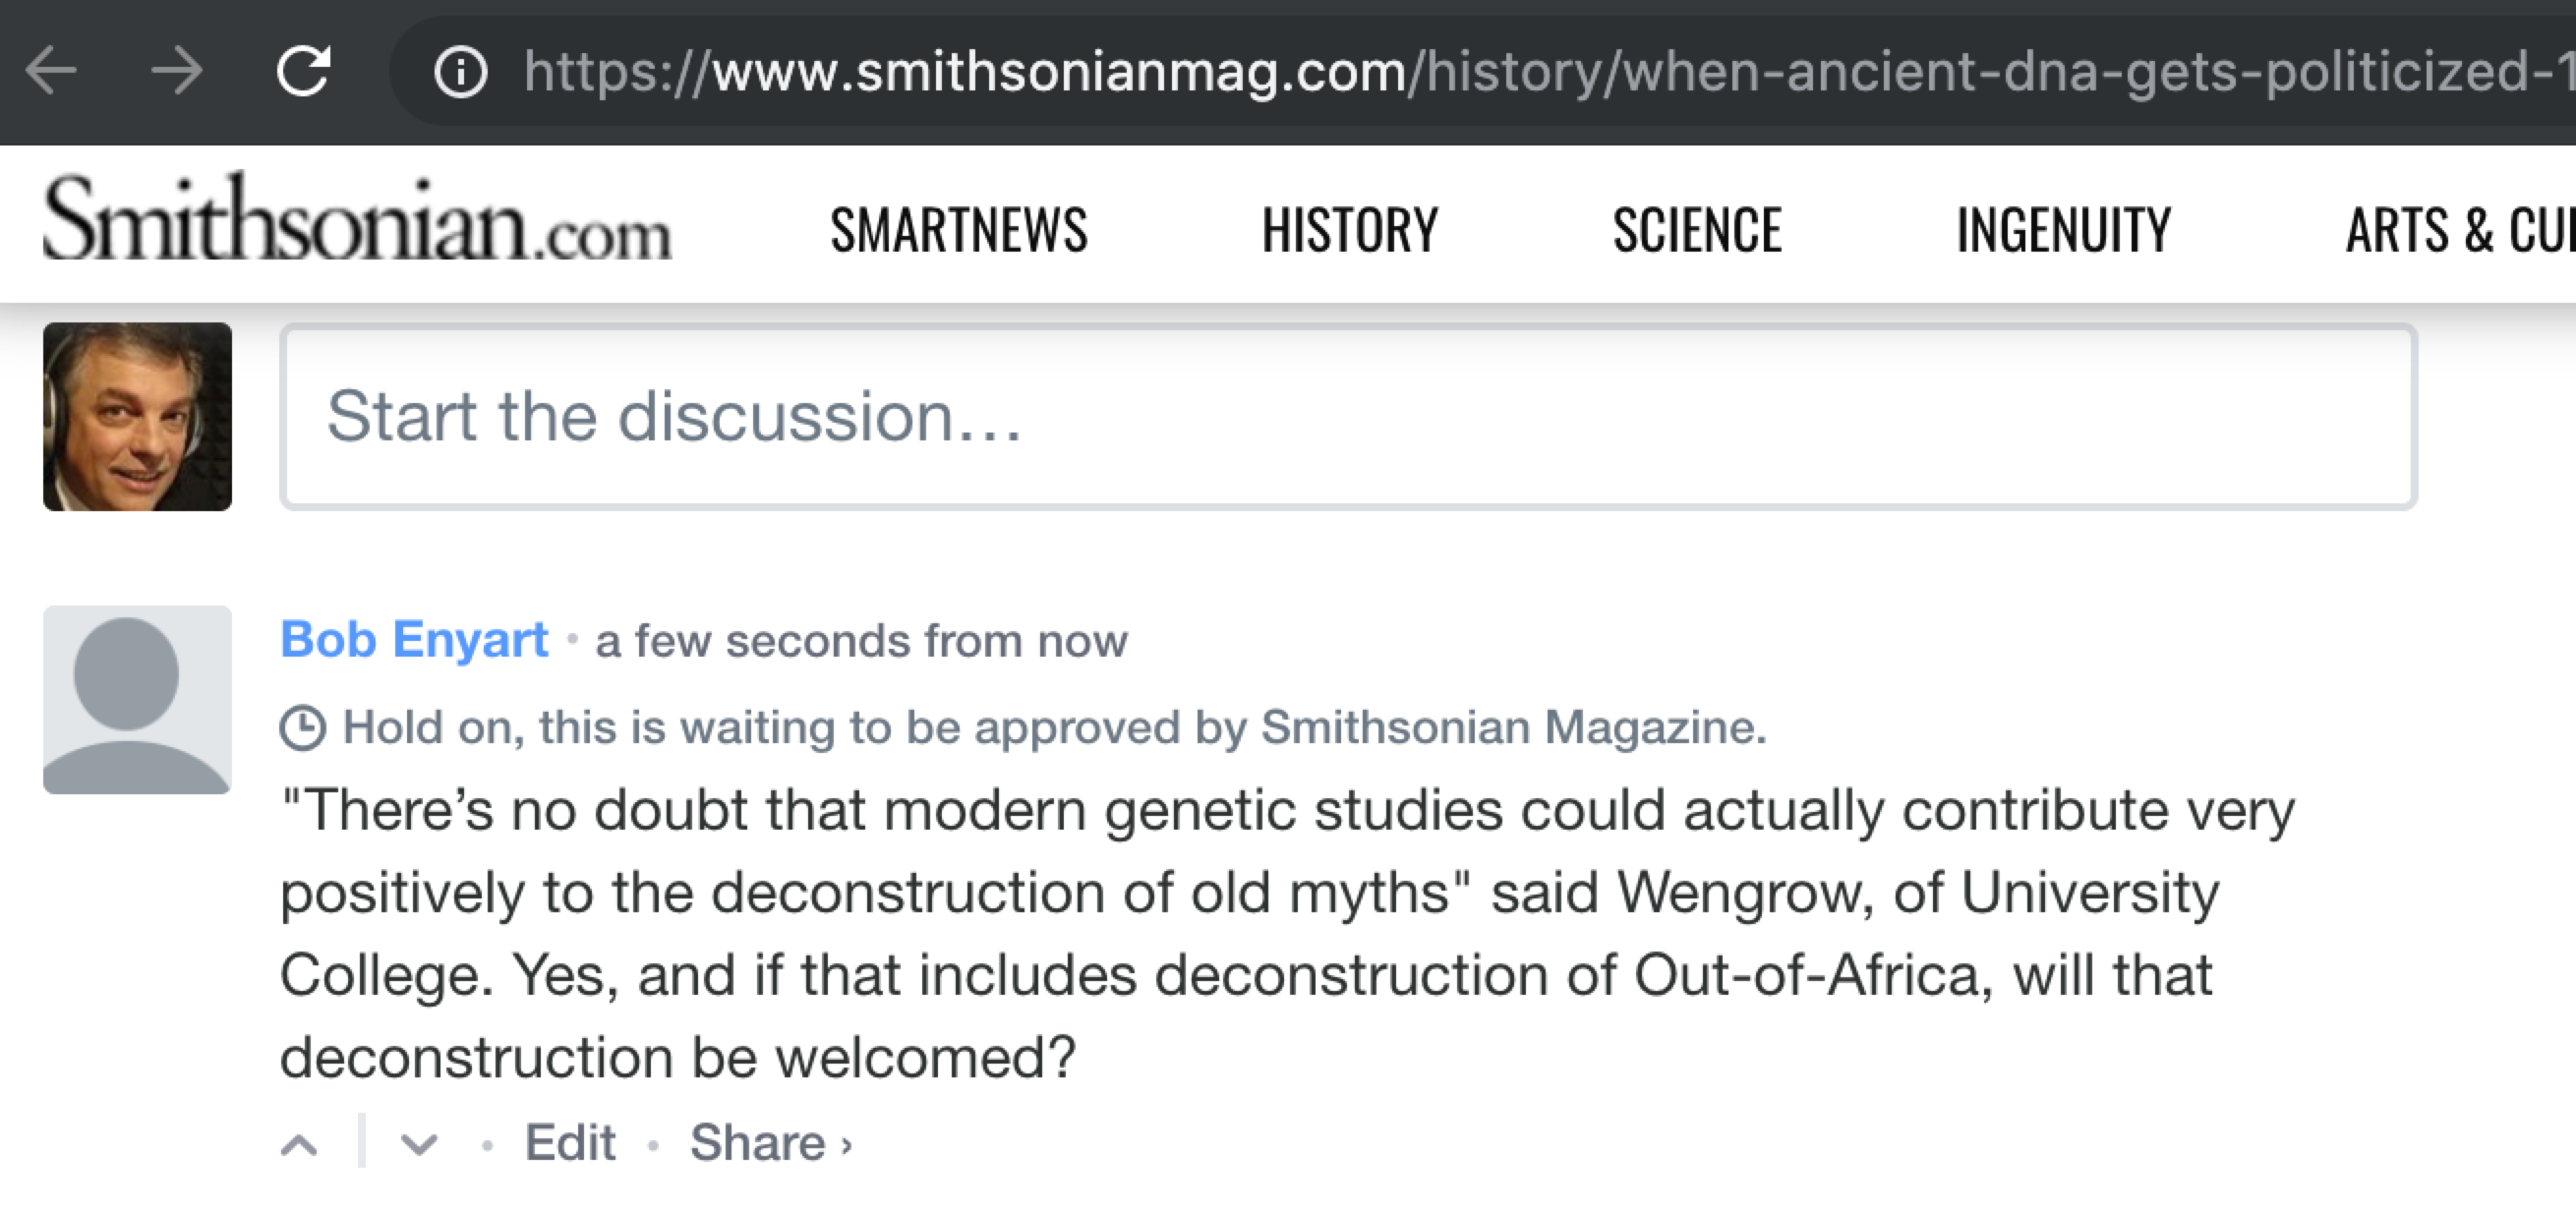 7/12/19 Smithsonian: When Ancient DNA Gets Politicized